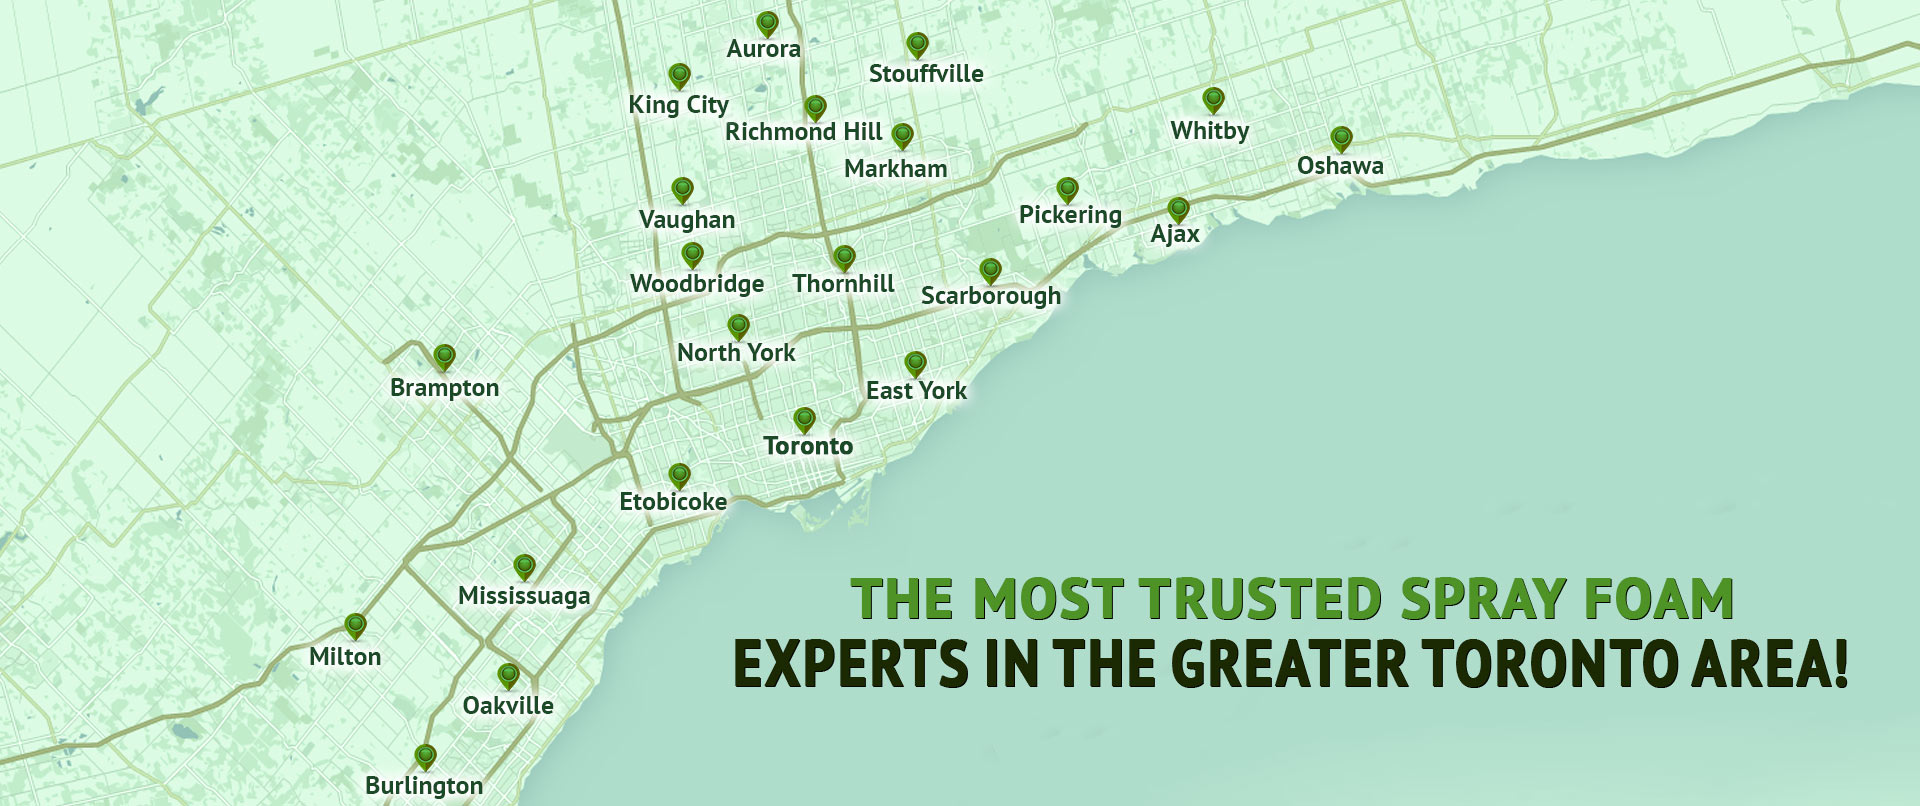 The Most Trusted Spray Foam Experts In The Greater Toronto Area Experts In The Greater Toronto Area!